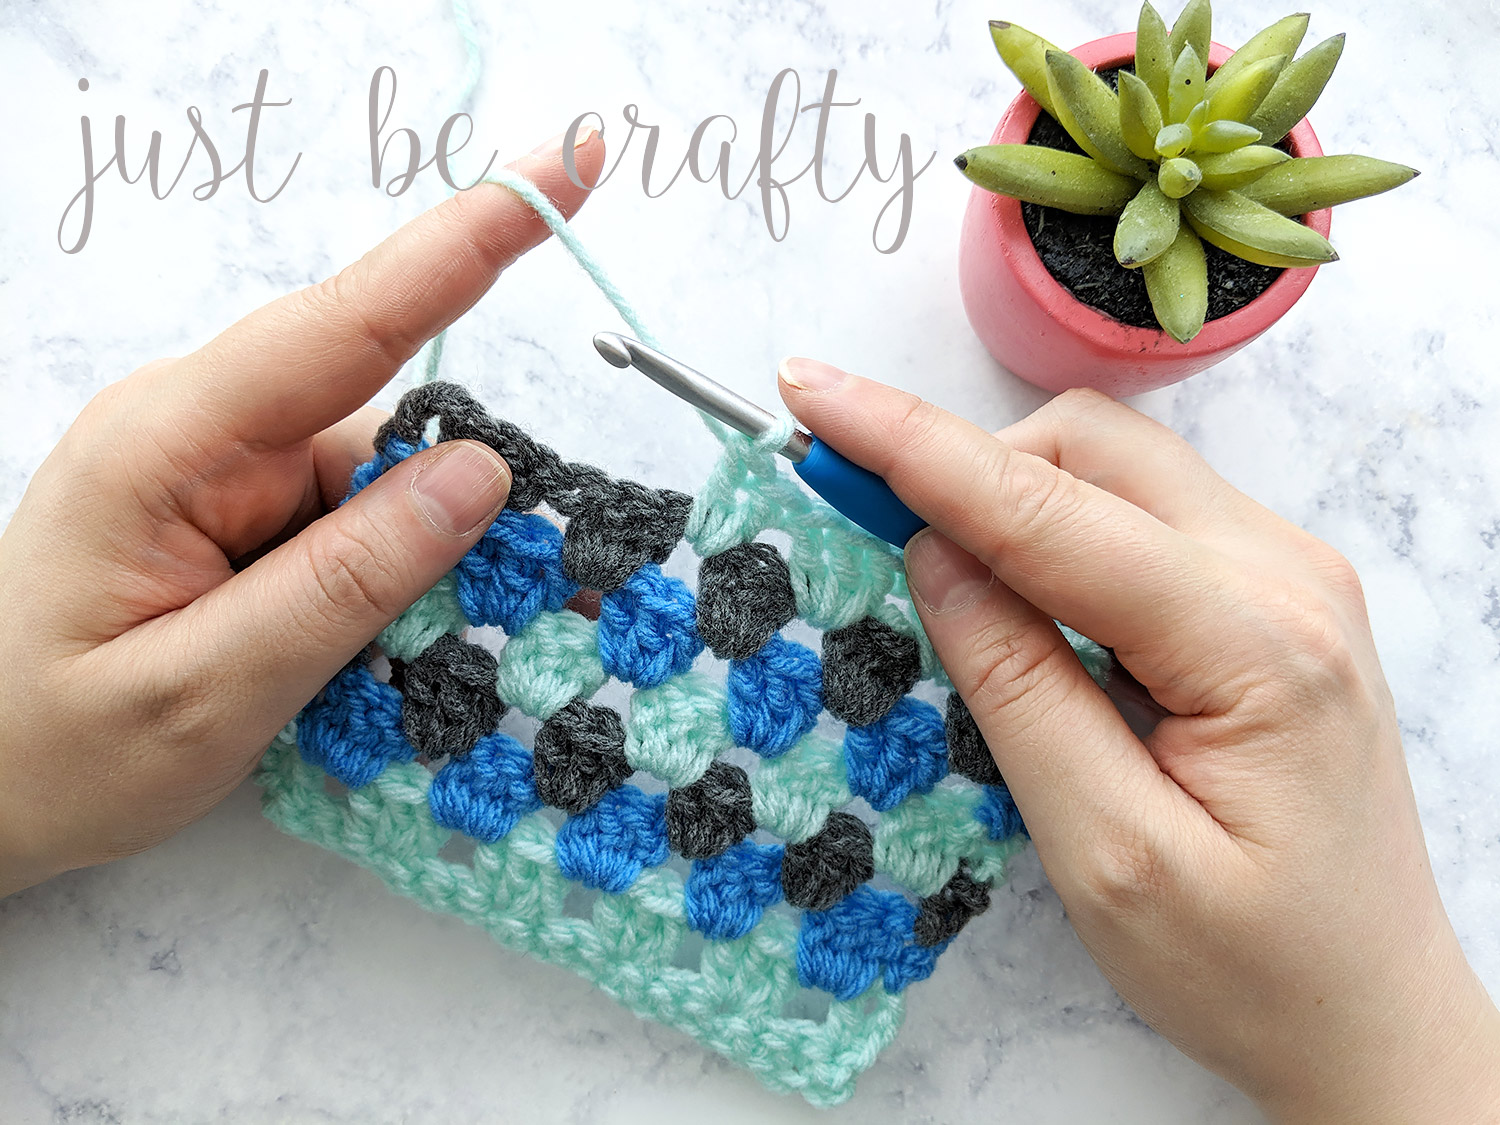 Granny Stripe Stitch Tutorial - Free Pattern by Just Be Crafty